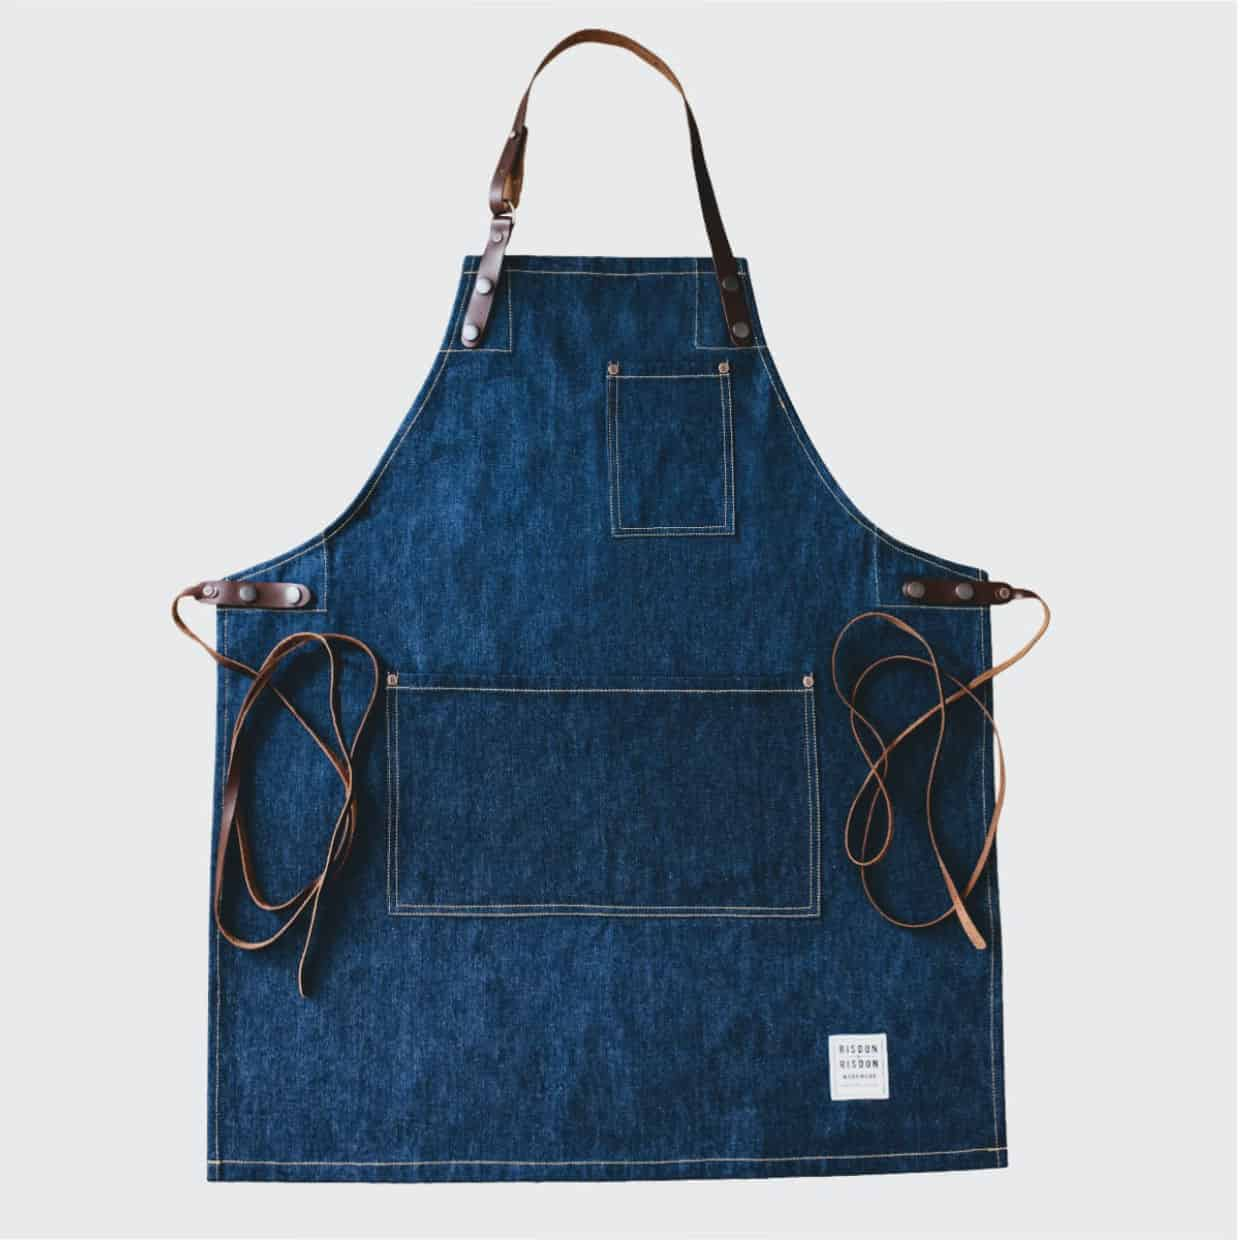 Risdon Barista 1240x1240 - Risdon & Risdon Interview - The making of handcrafted aprons.